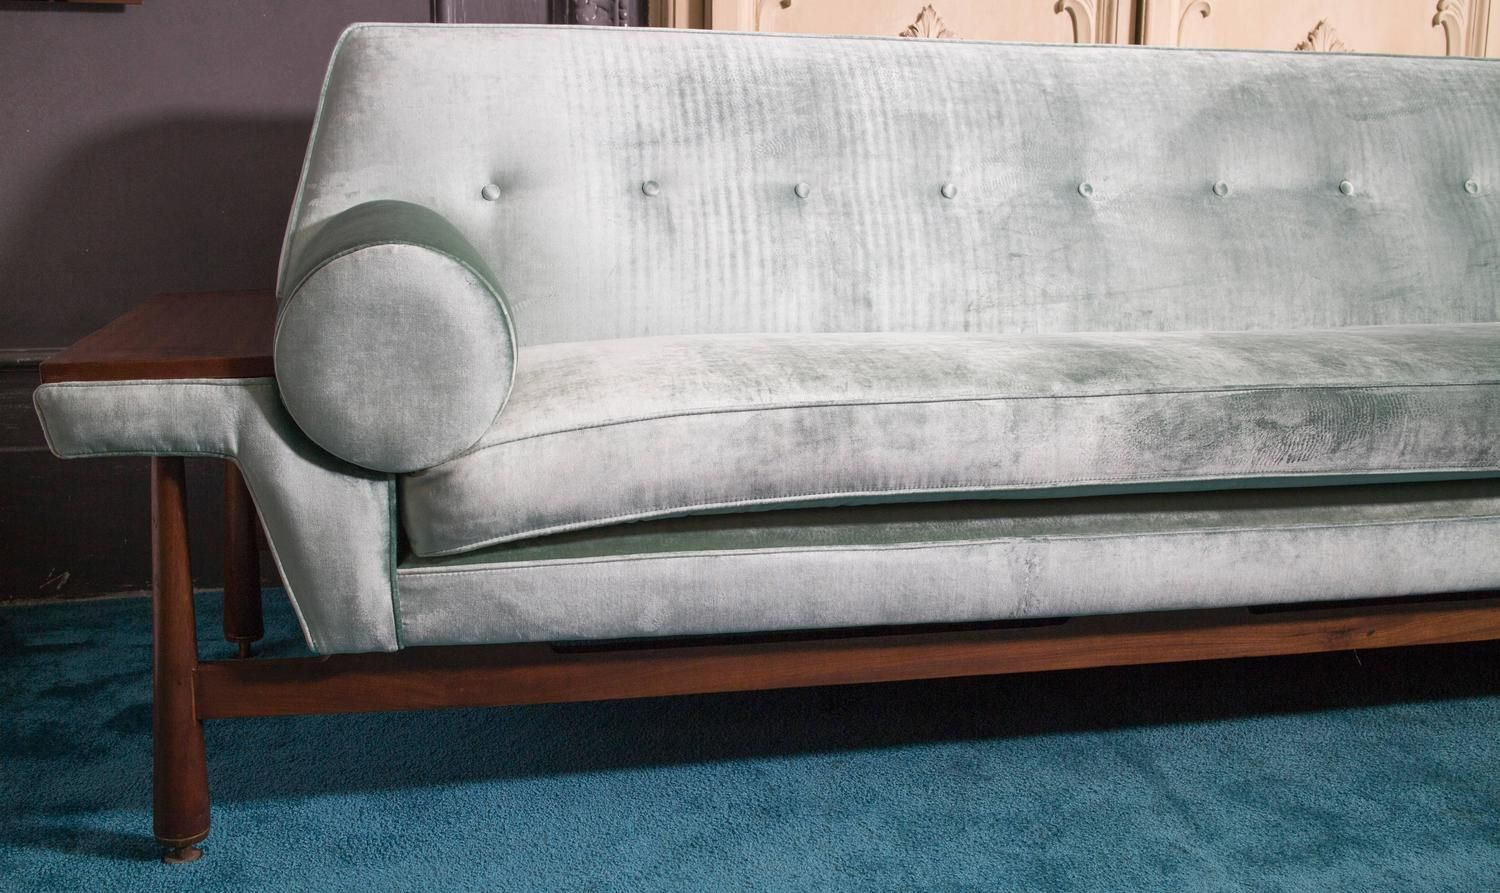 1950s mid century modern sofa - Mid Century Modern Furniture Of The 1950s